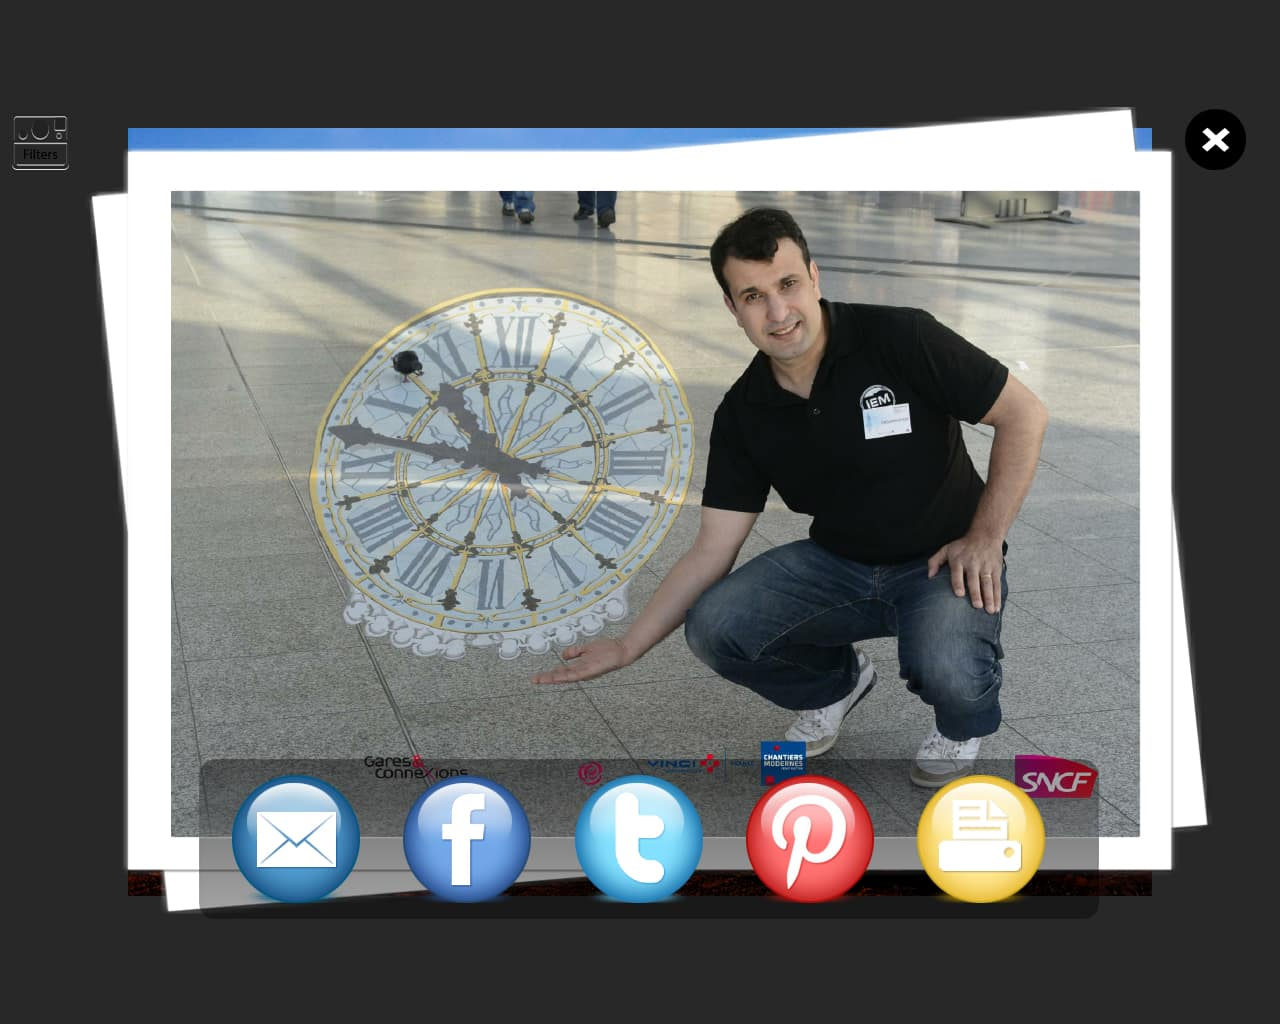 resea - Sharing to media social networks photobooth